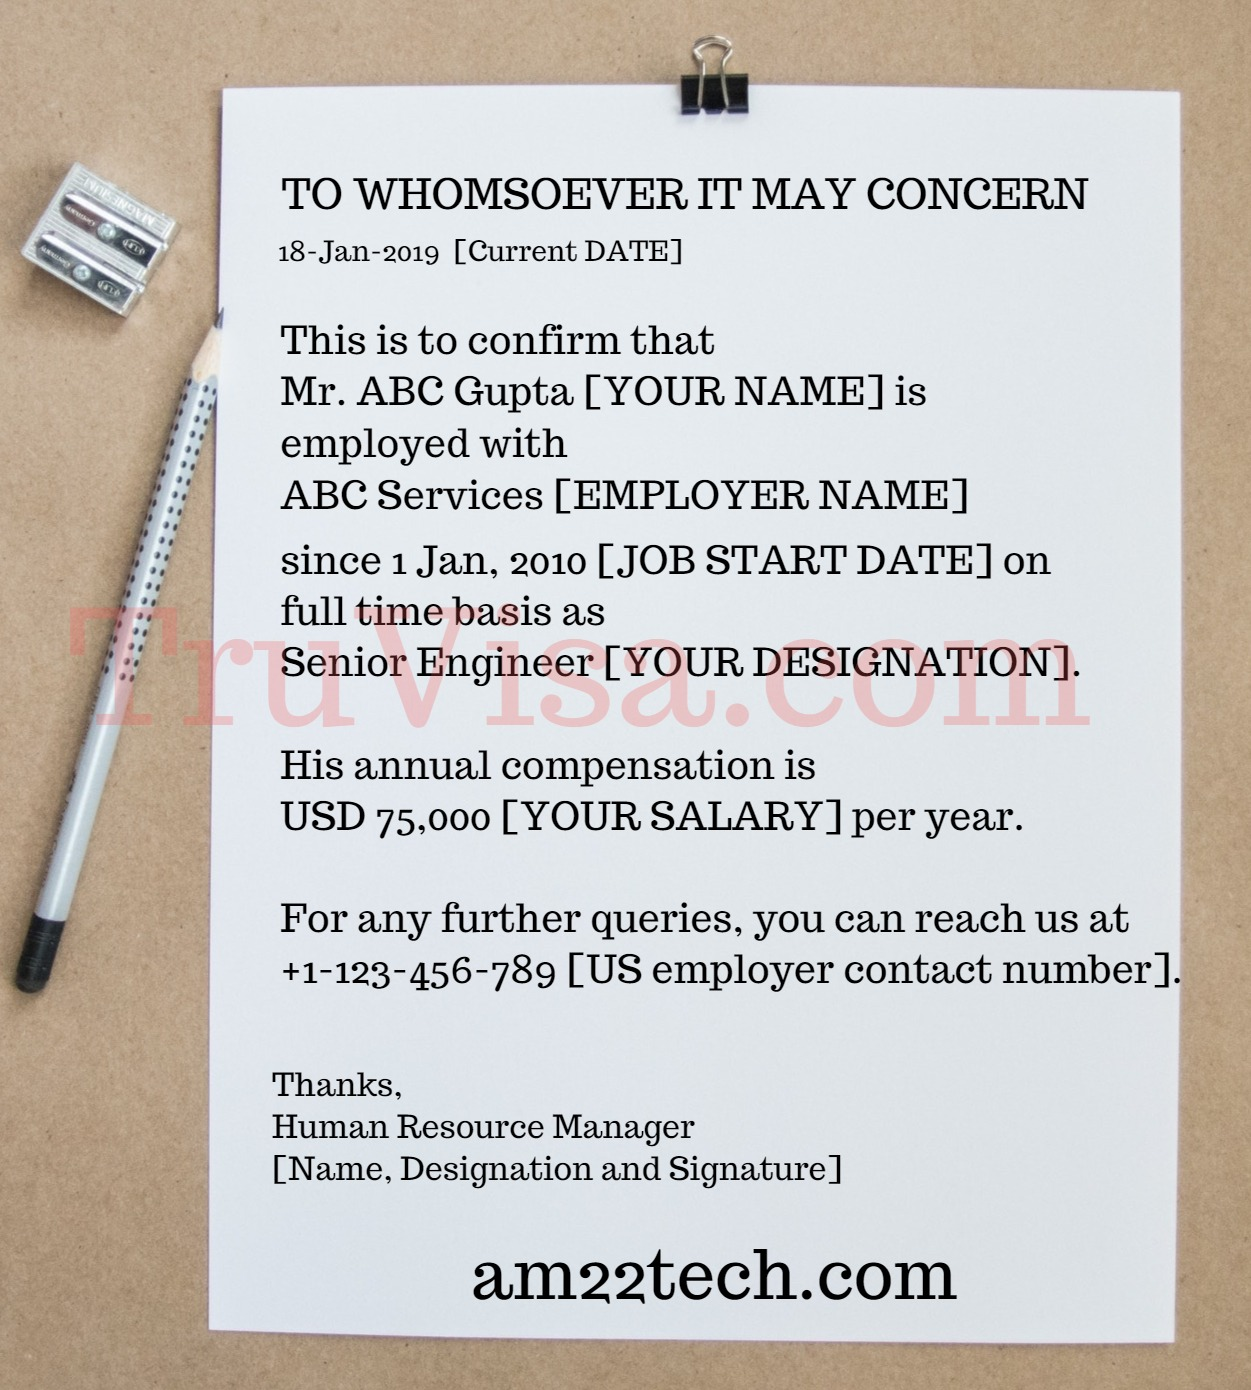 Sample Employment Verification Letter for US Visa Stamping - AM22 Tech